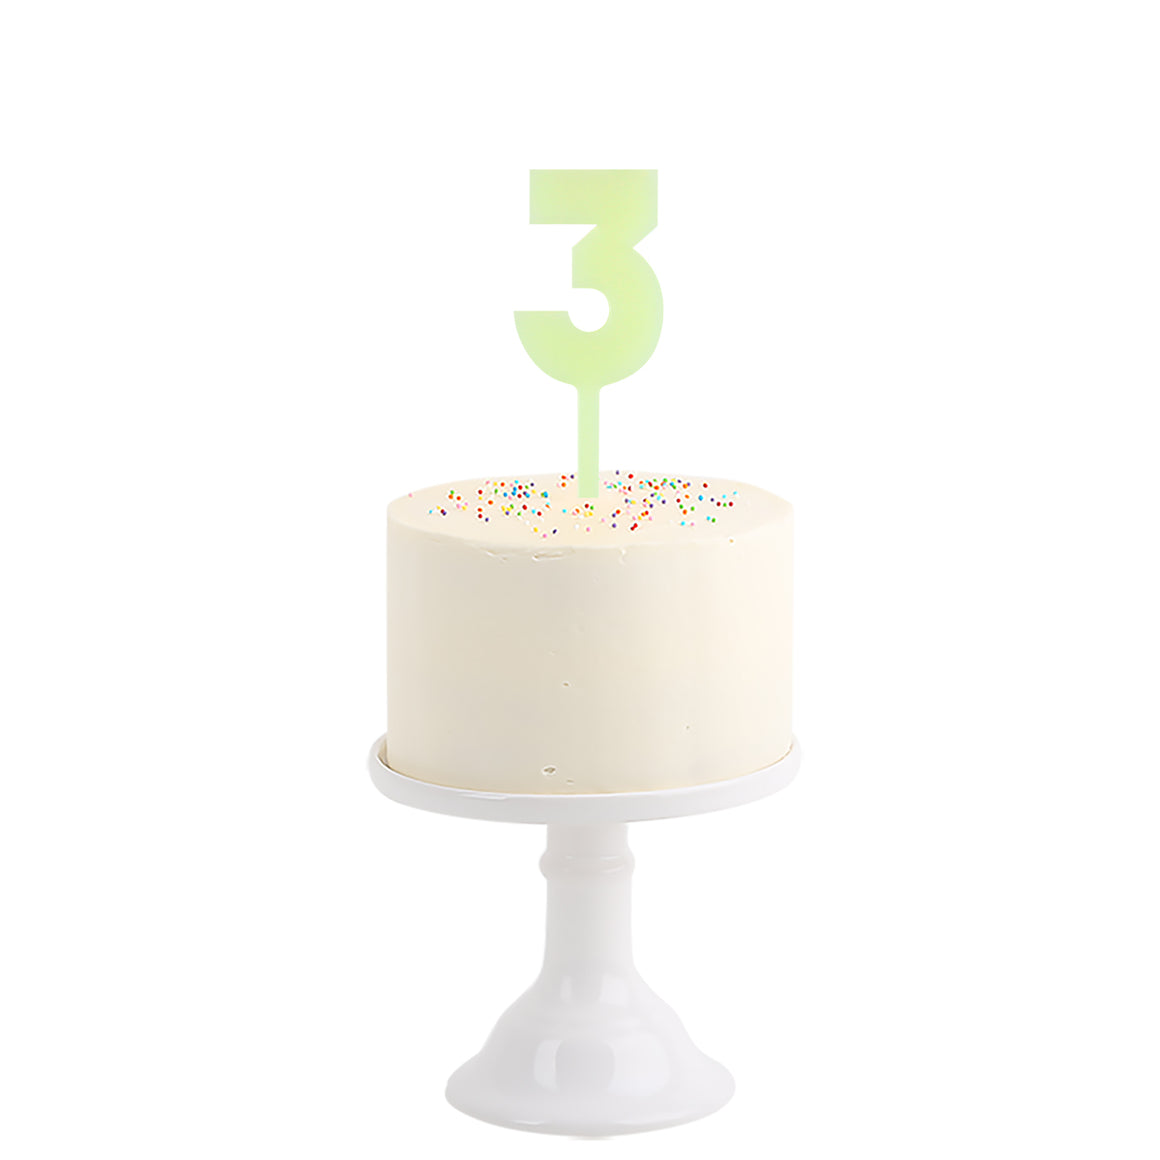 Have a happy birthday this year with this cool cake topper! Place the number in your cake and create a beautiful decoration next to it!